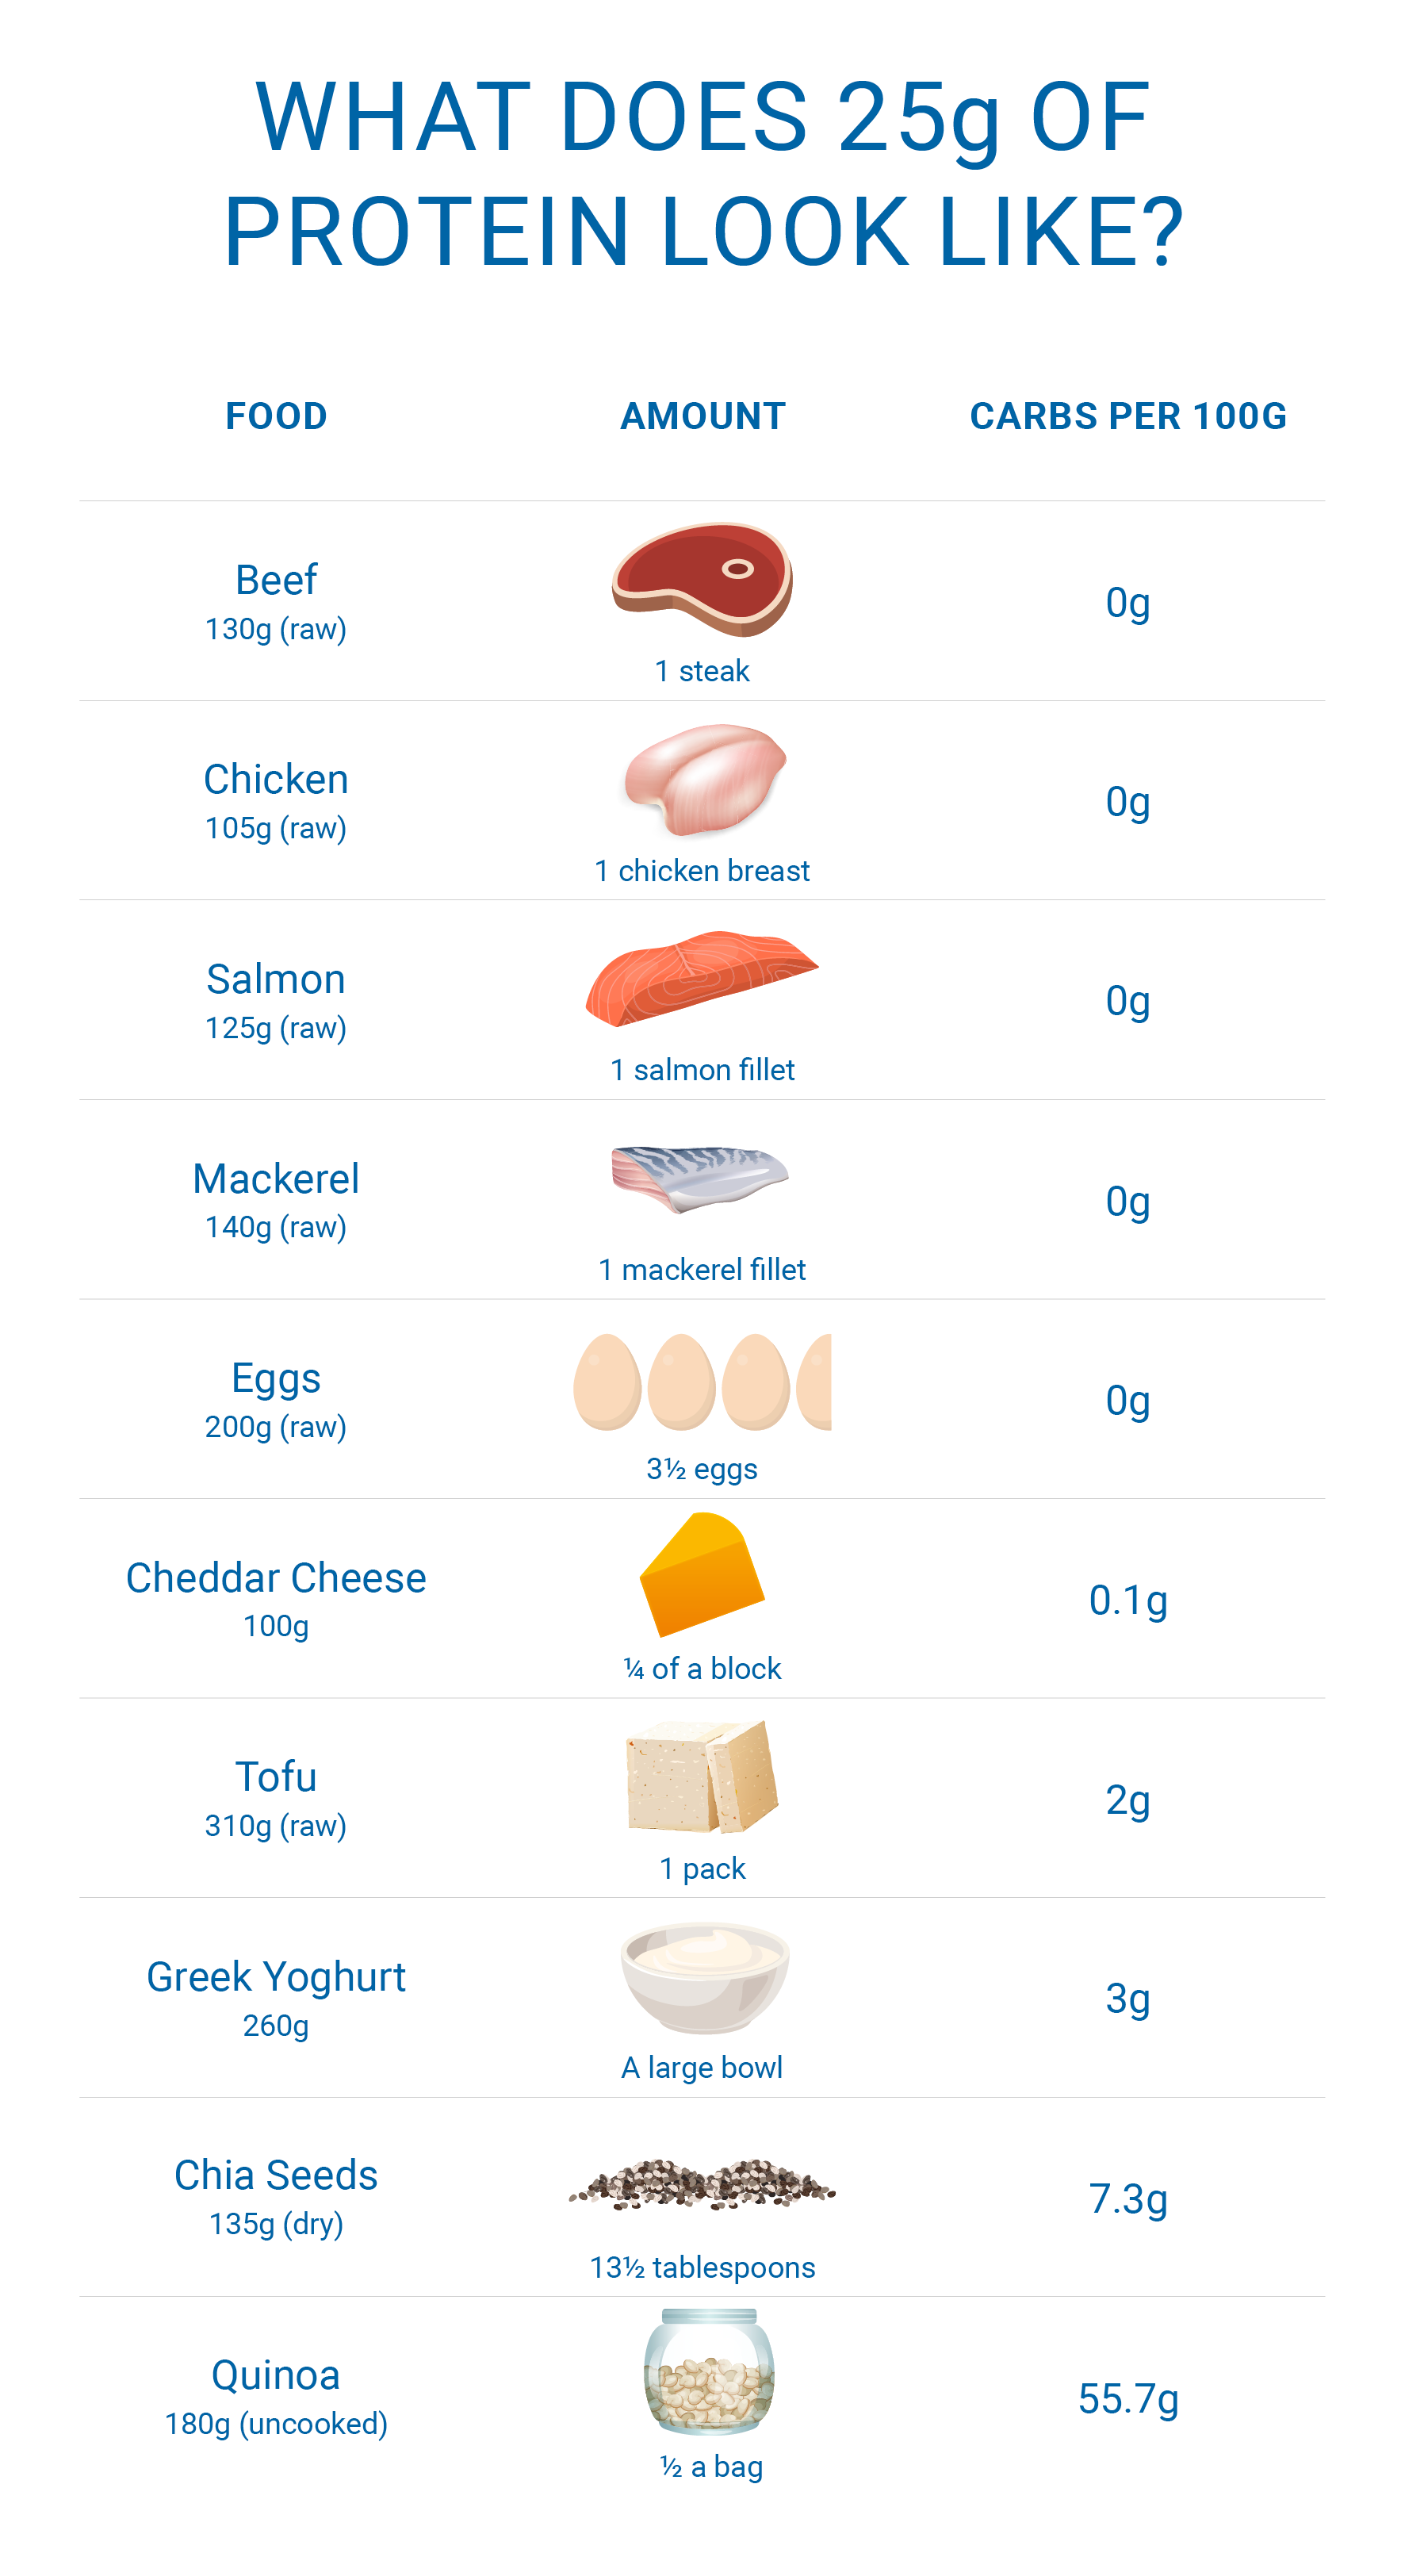 What Does 25g Of Protein Look Like Lifestyle Salmon Fillets Low Sugar Protein